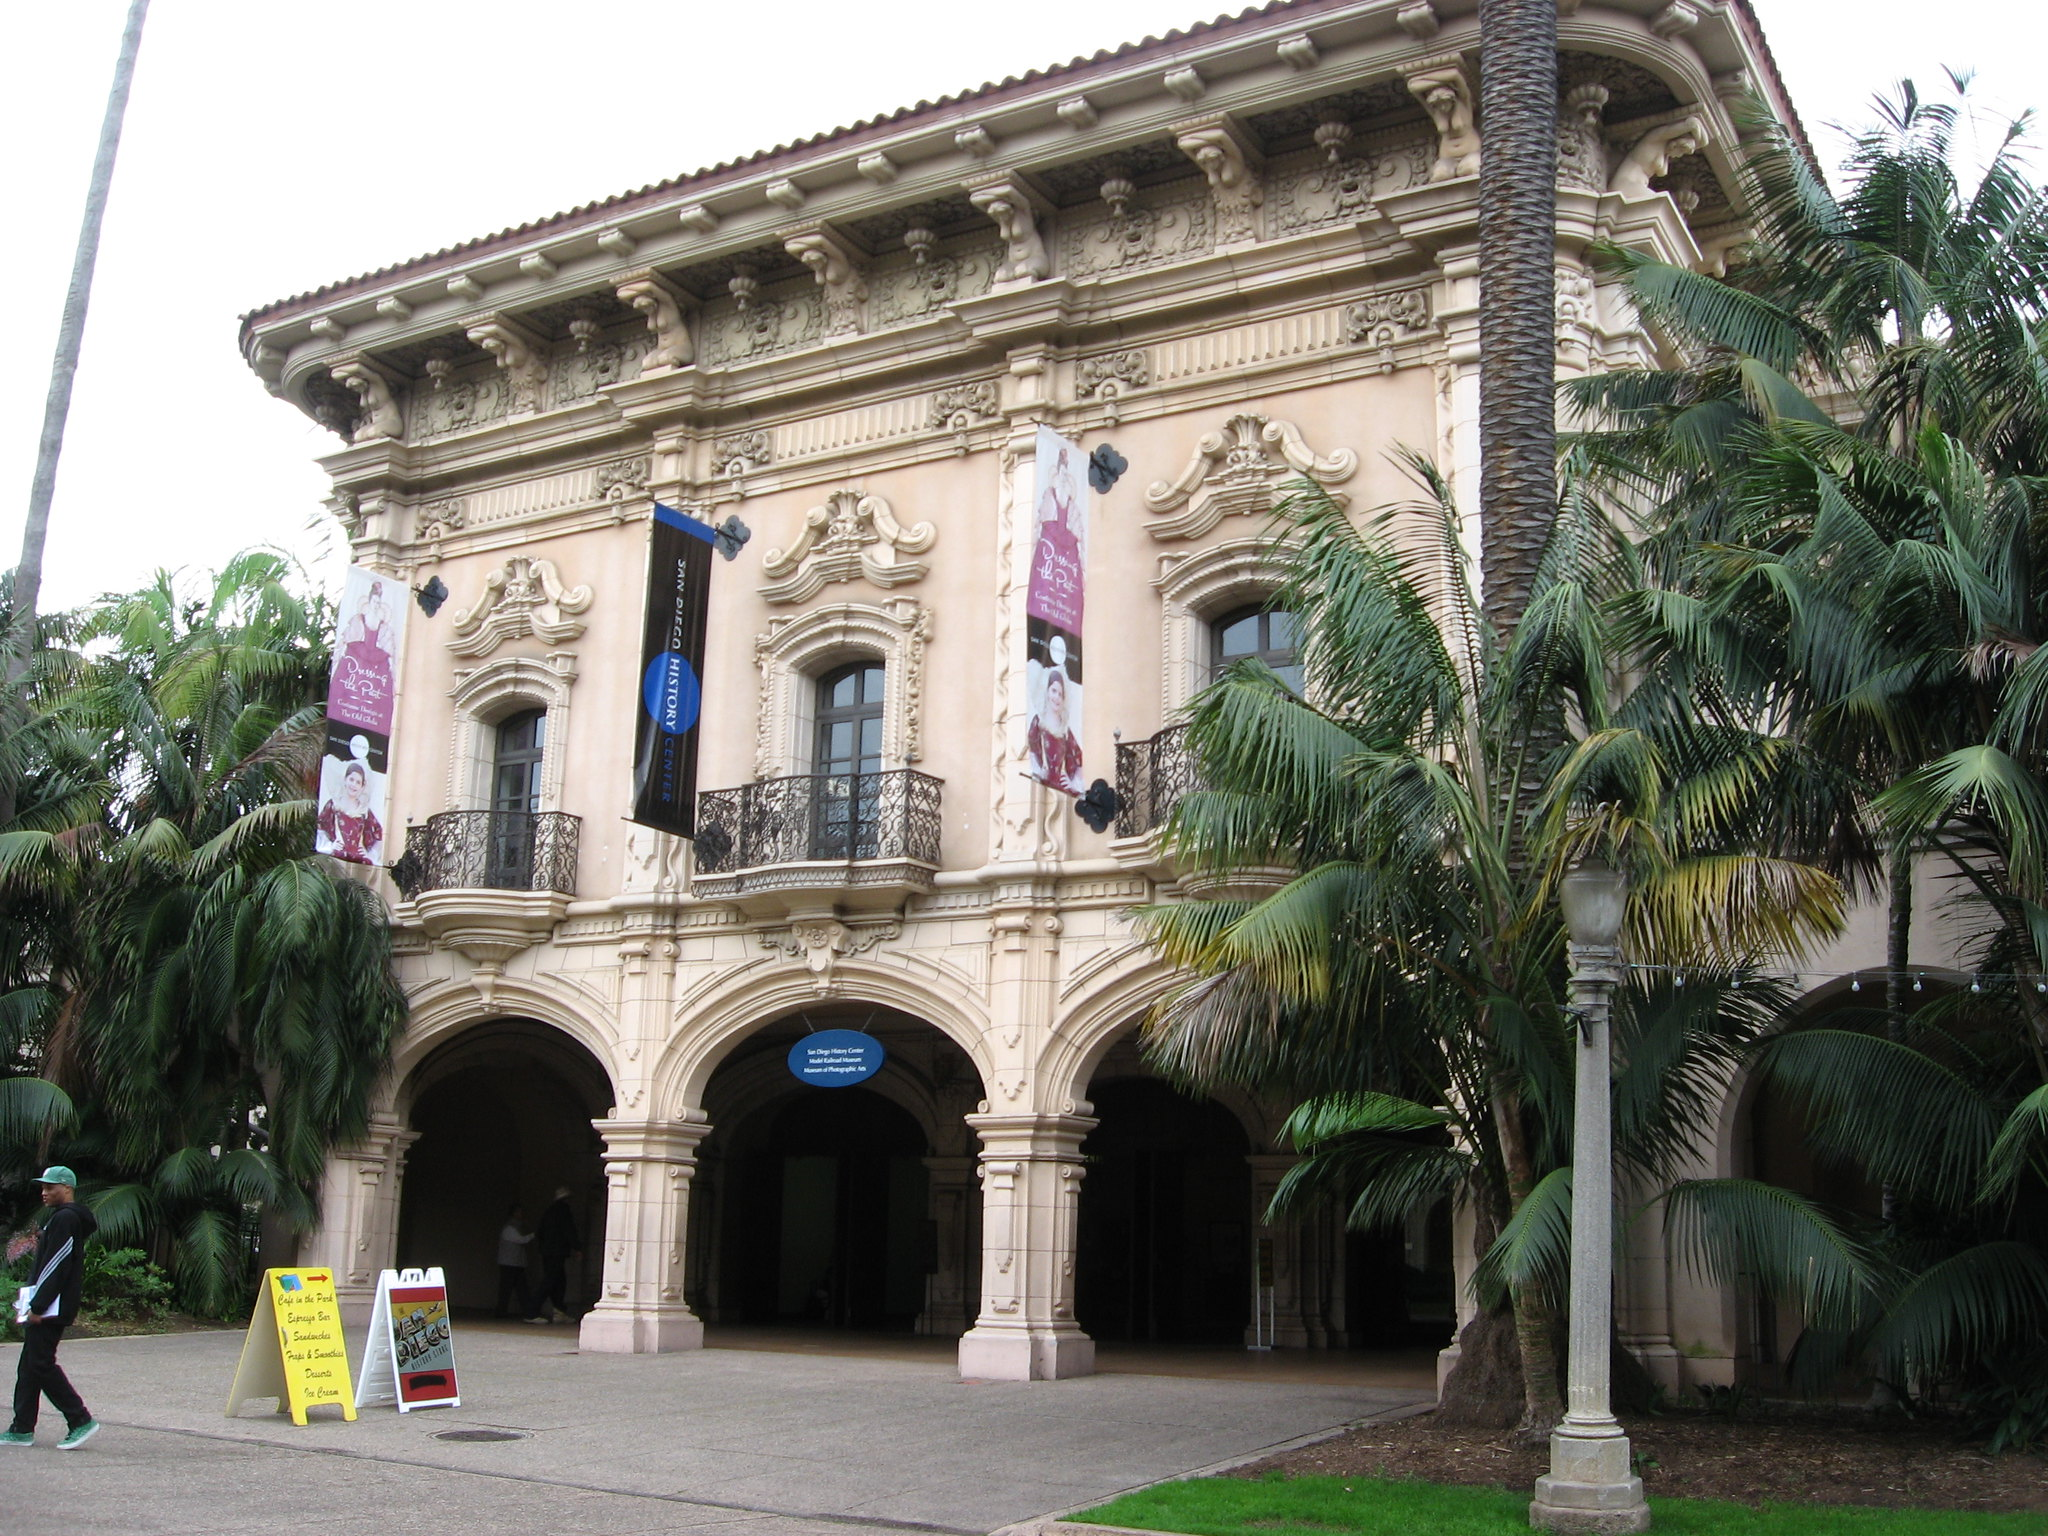 Best Destination in California for Road Trips-San Diego Old Town and Balboa Park